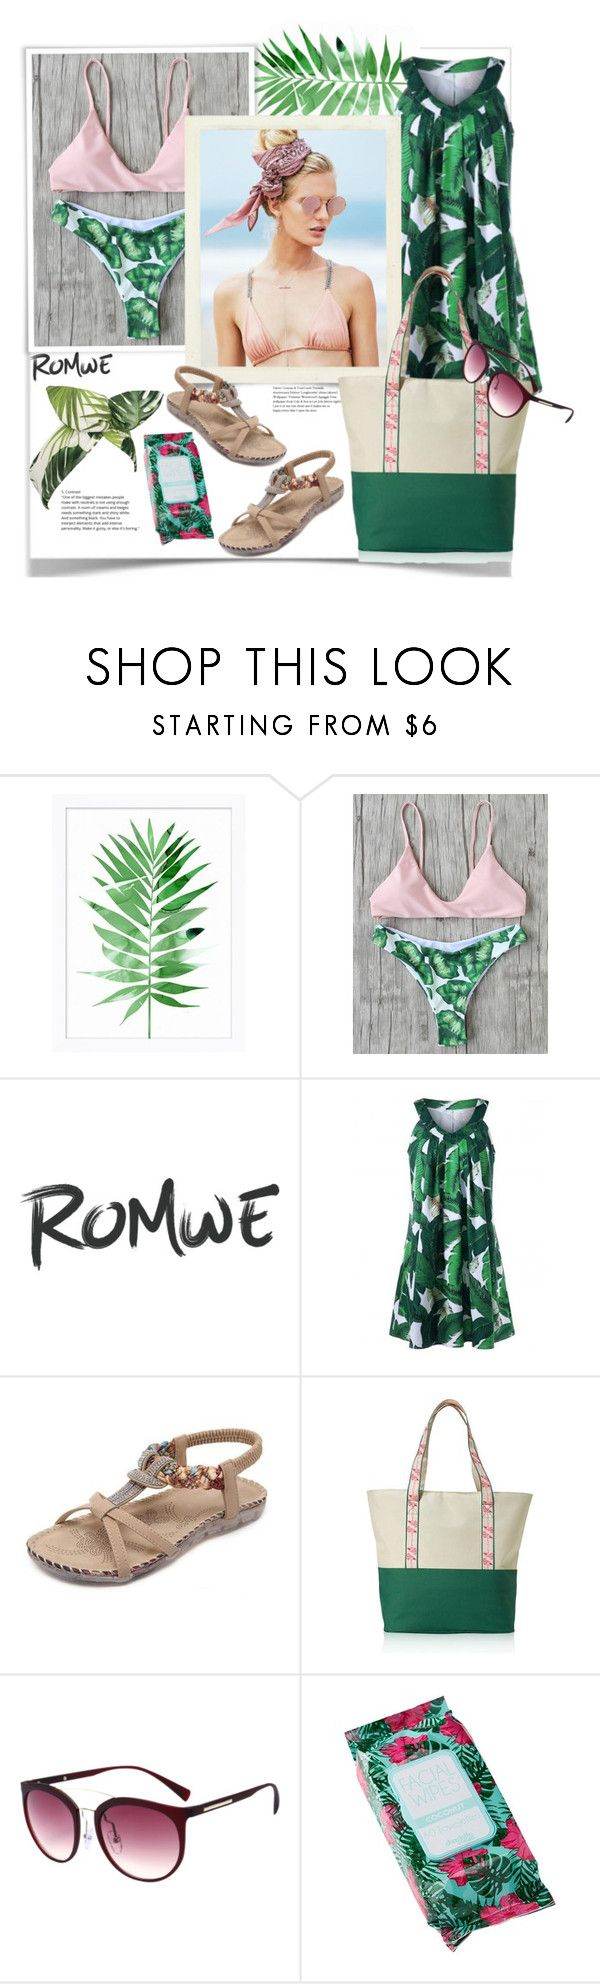 """""""Romwe."""" by natalyapril1976 ❤ liked on Polyvore featuring Pottery Barn, Beach Riot, Avon, Charlotte Russe and Lulu in the Sky"""